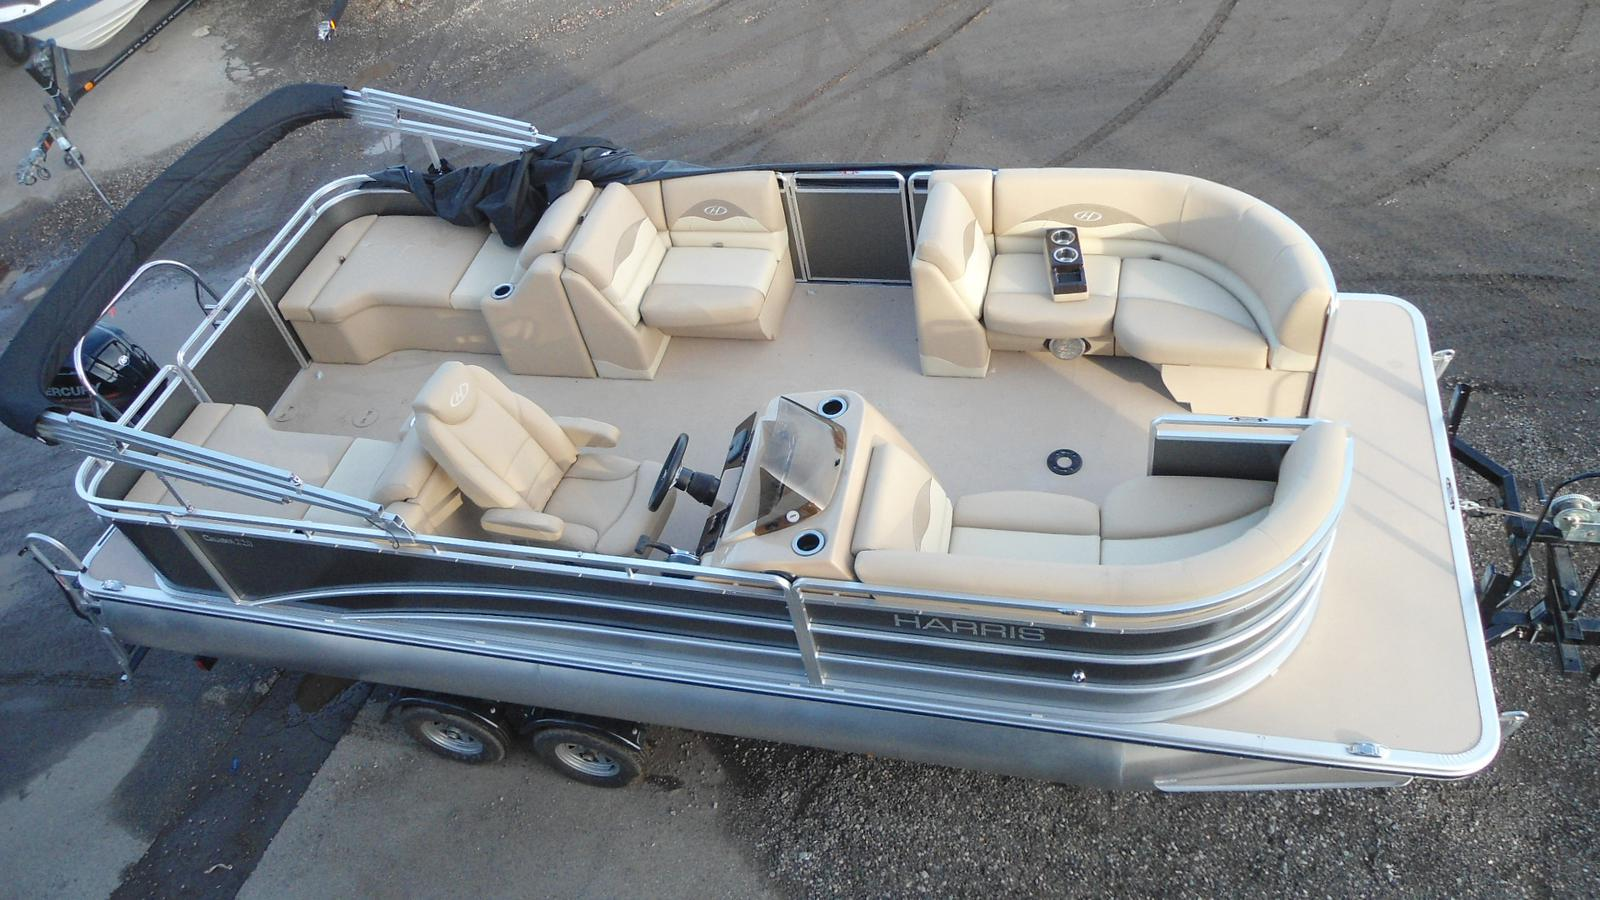 For Sale: 2016 Harris Cruiser 220 23ft<br/>Dockside Marine Centre, LTD.